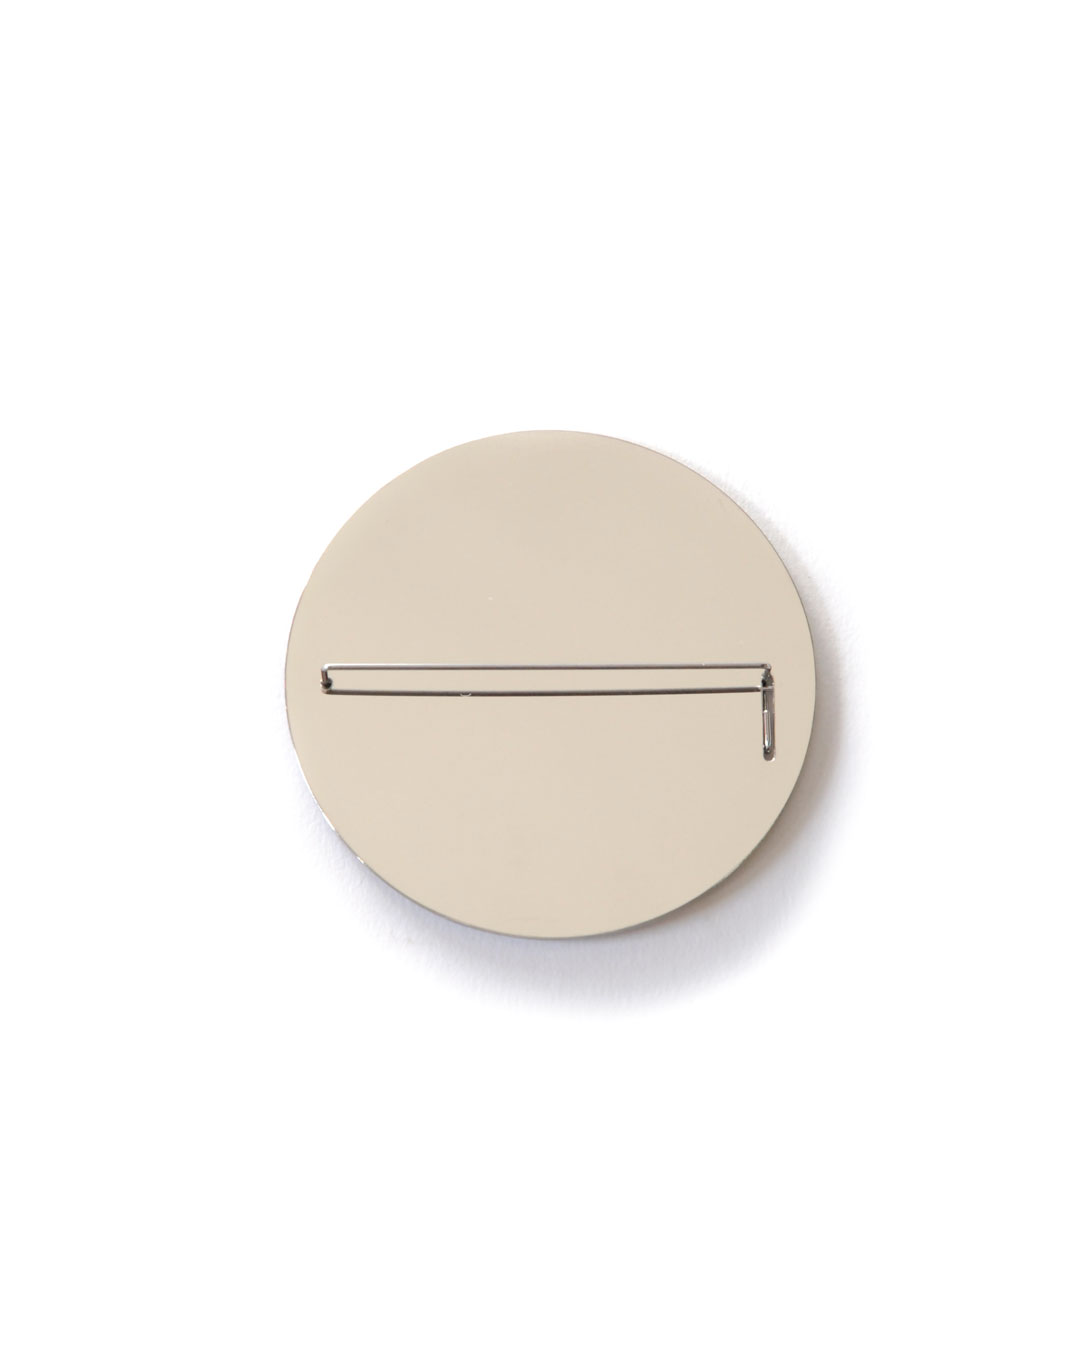 Junwon Jung, Pin and Mirror, 2015, brooch; steel, 65 x 65 mm, €610